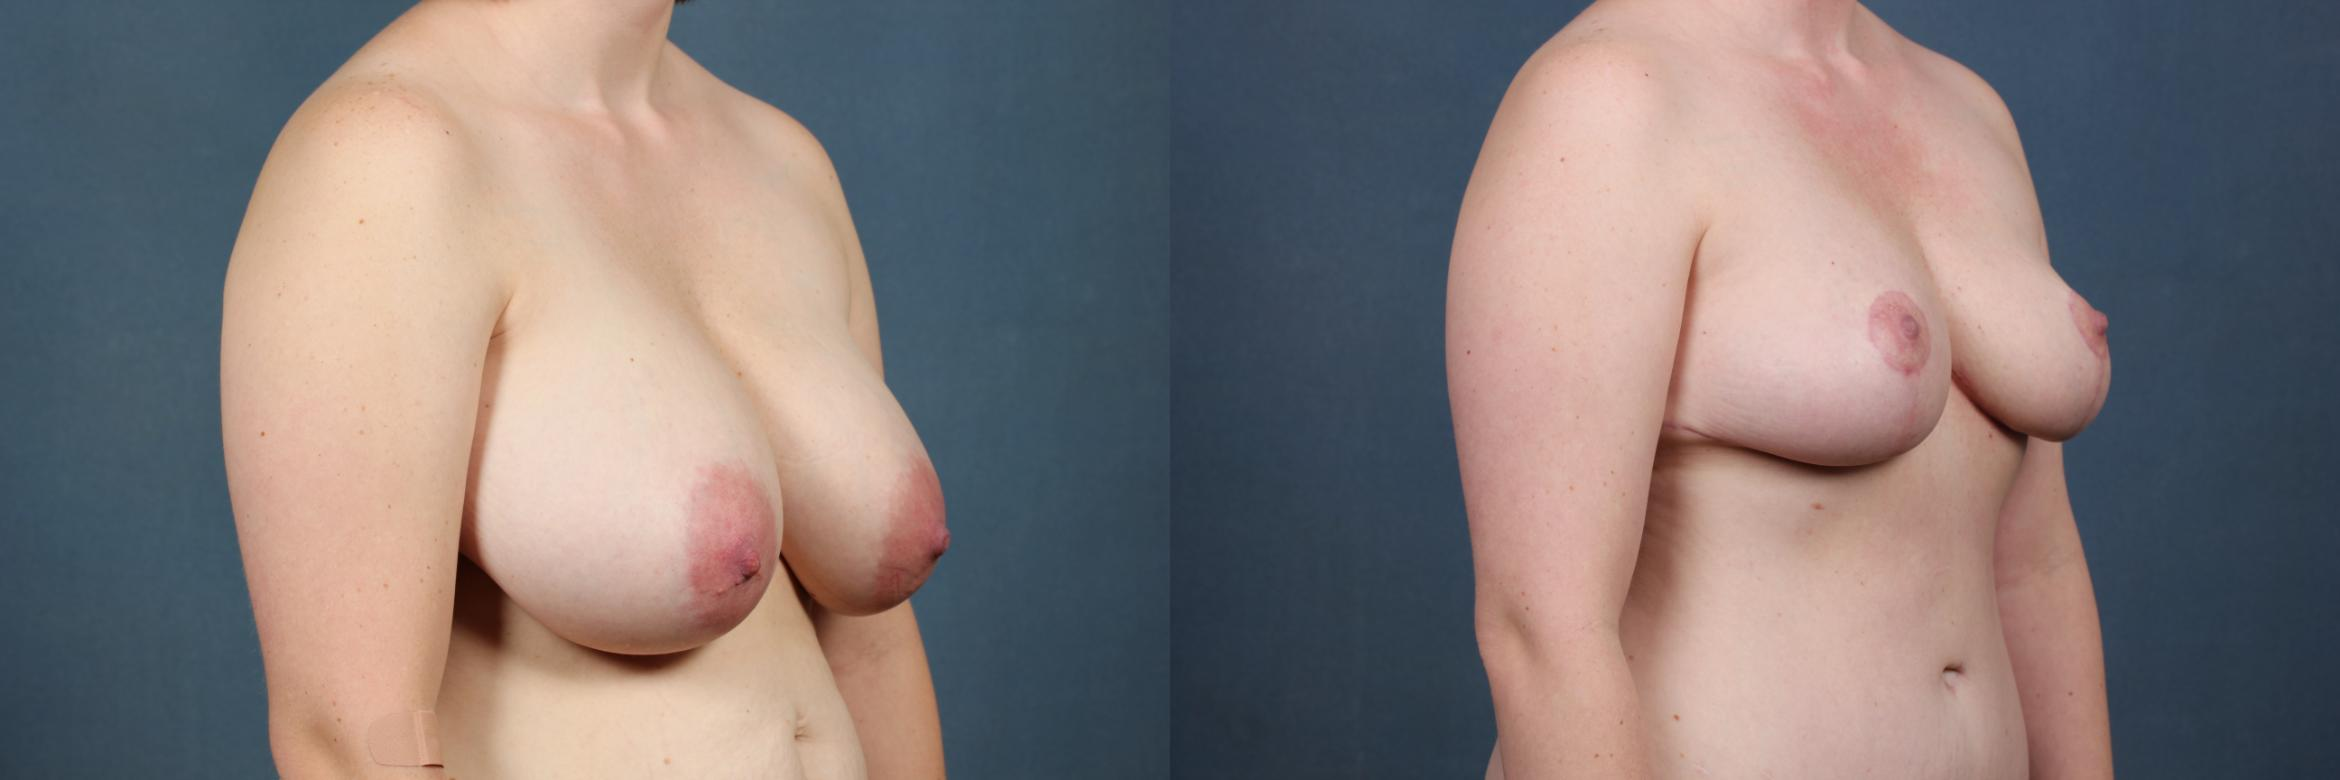 Reduction Case 445 Before & After View #3 | Louisville & Lexington, KY | CaloAesthetics® Plastic Surgery Center